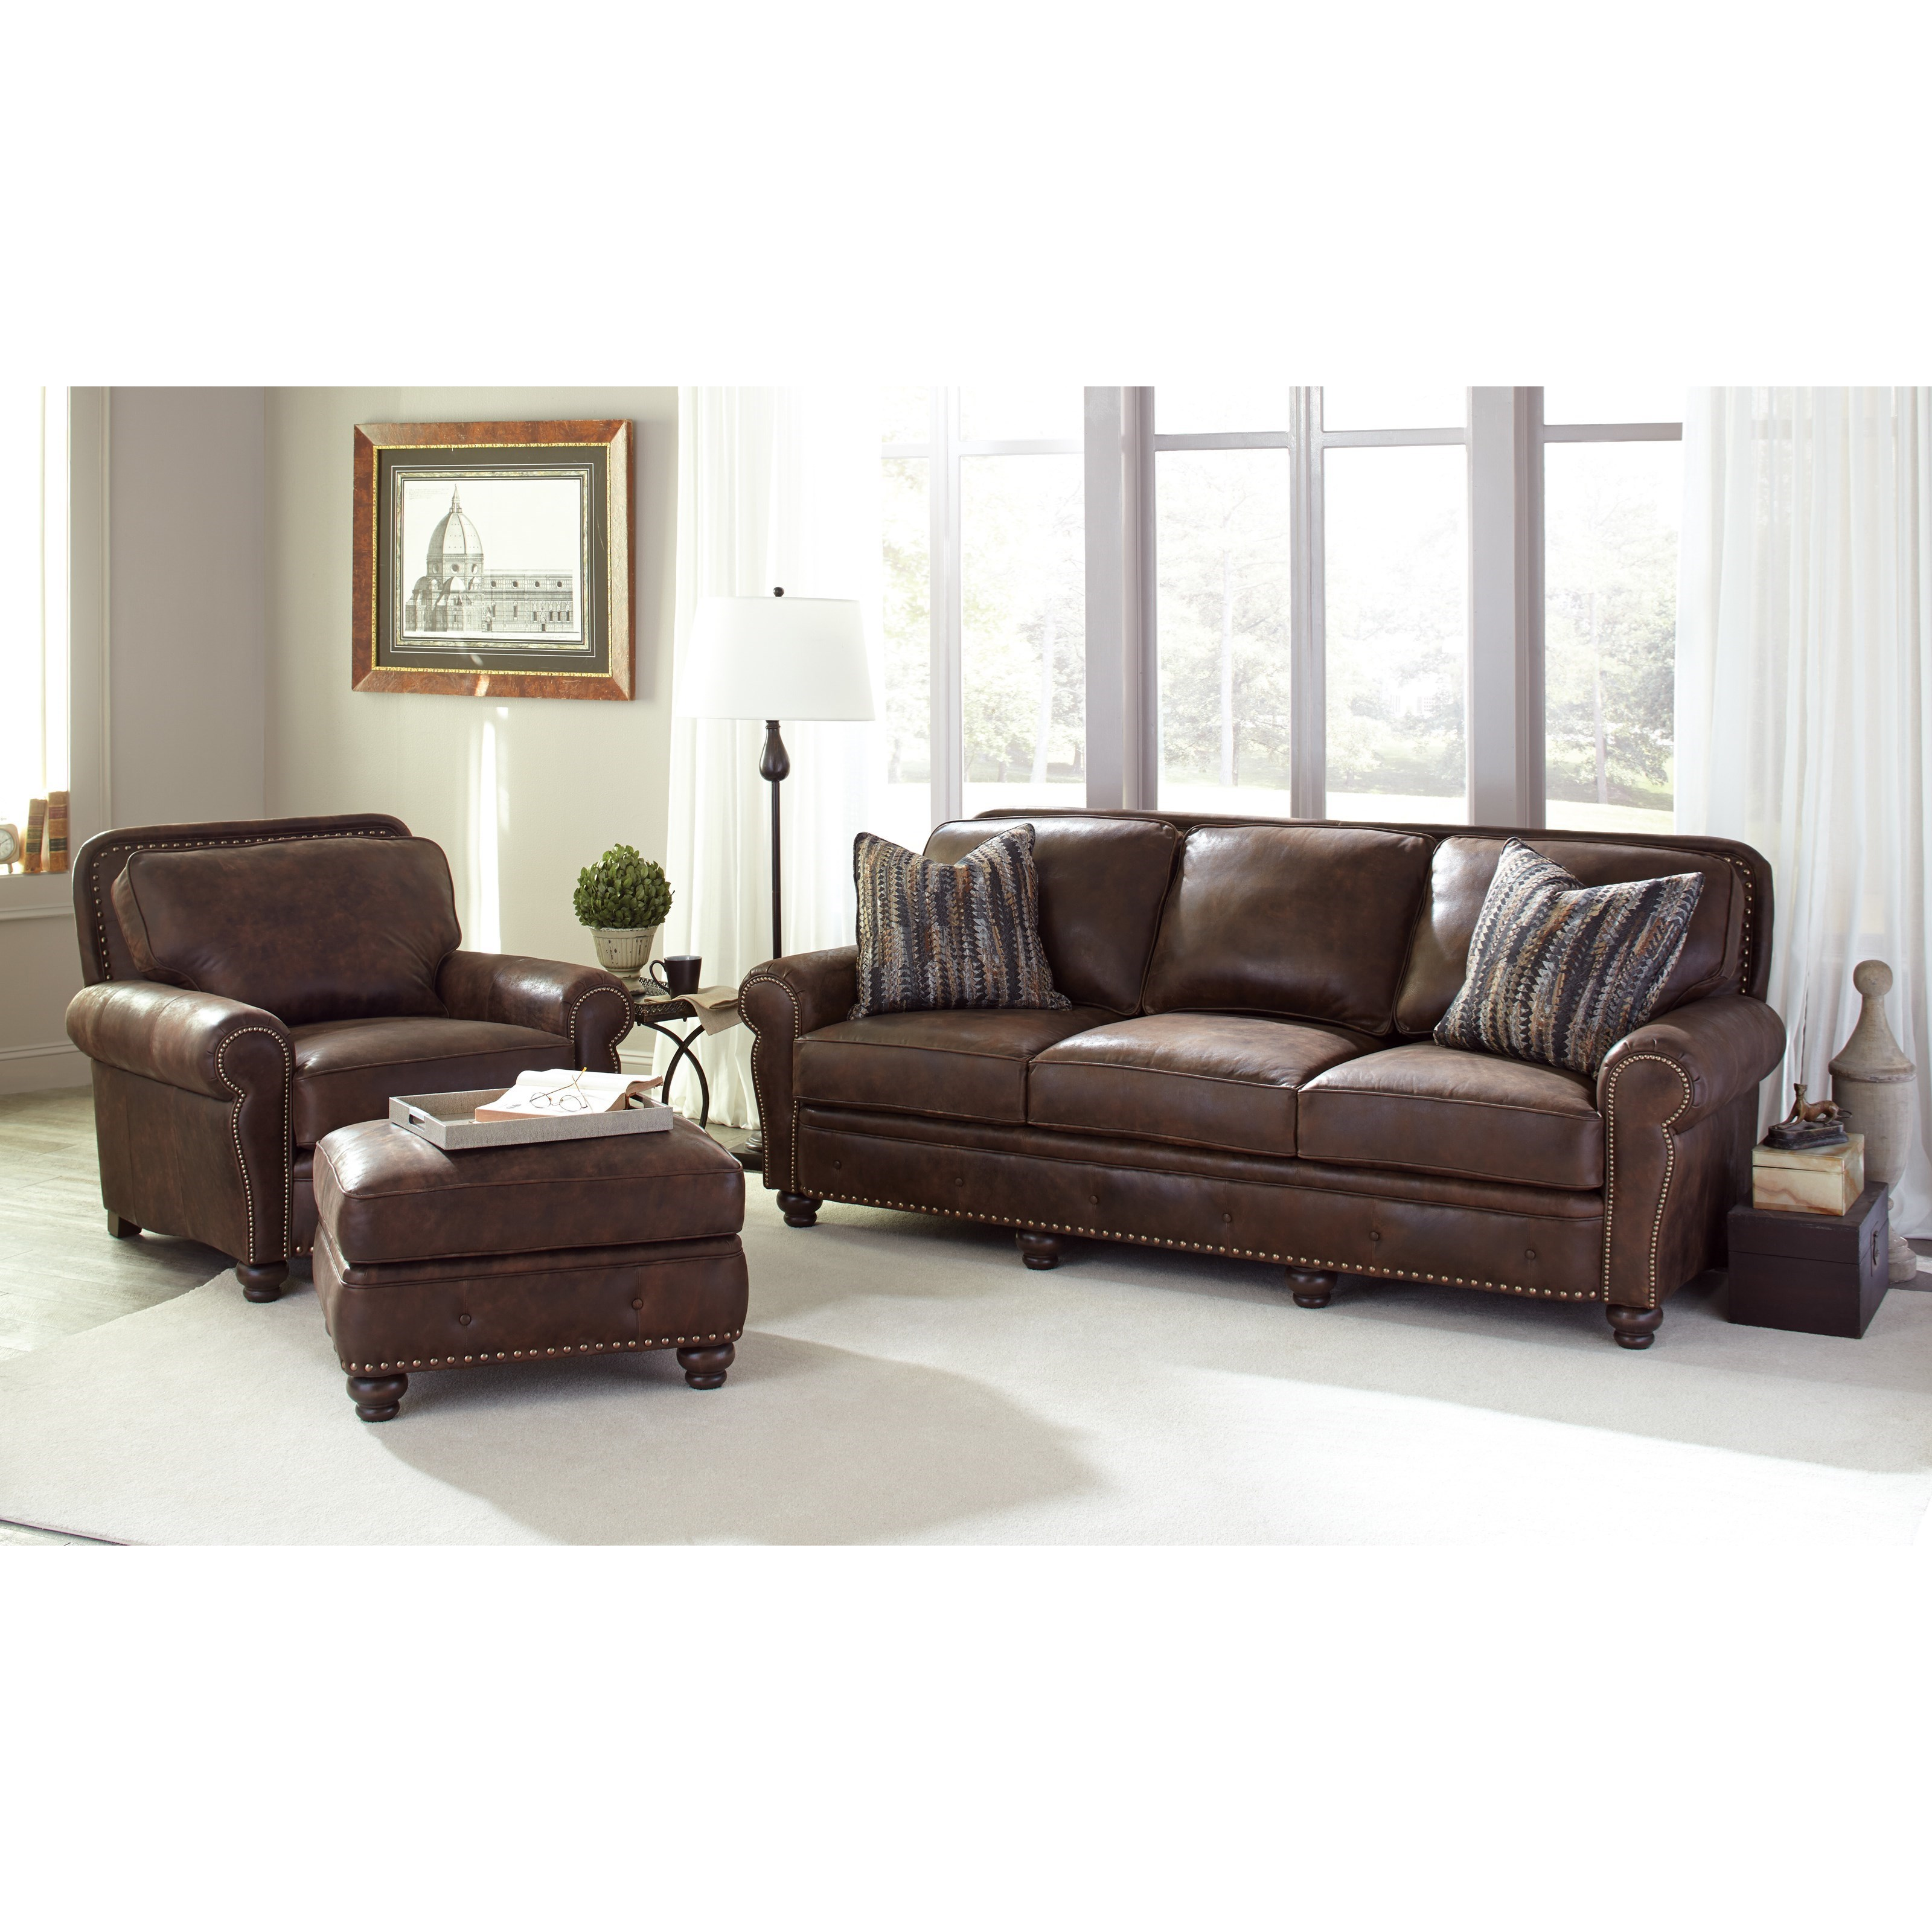 Smith brothers 237 stationary living room group dunk for Living room furniture groups